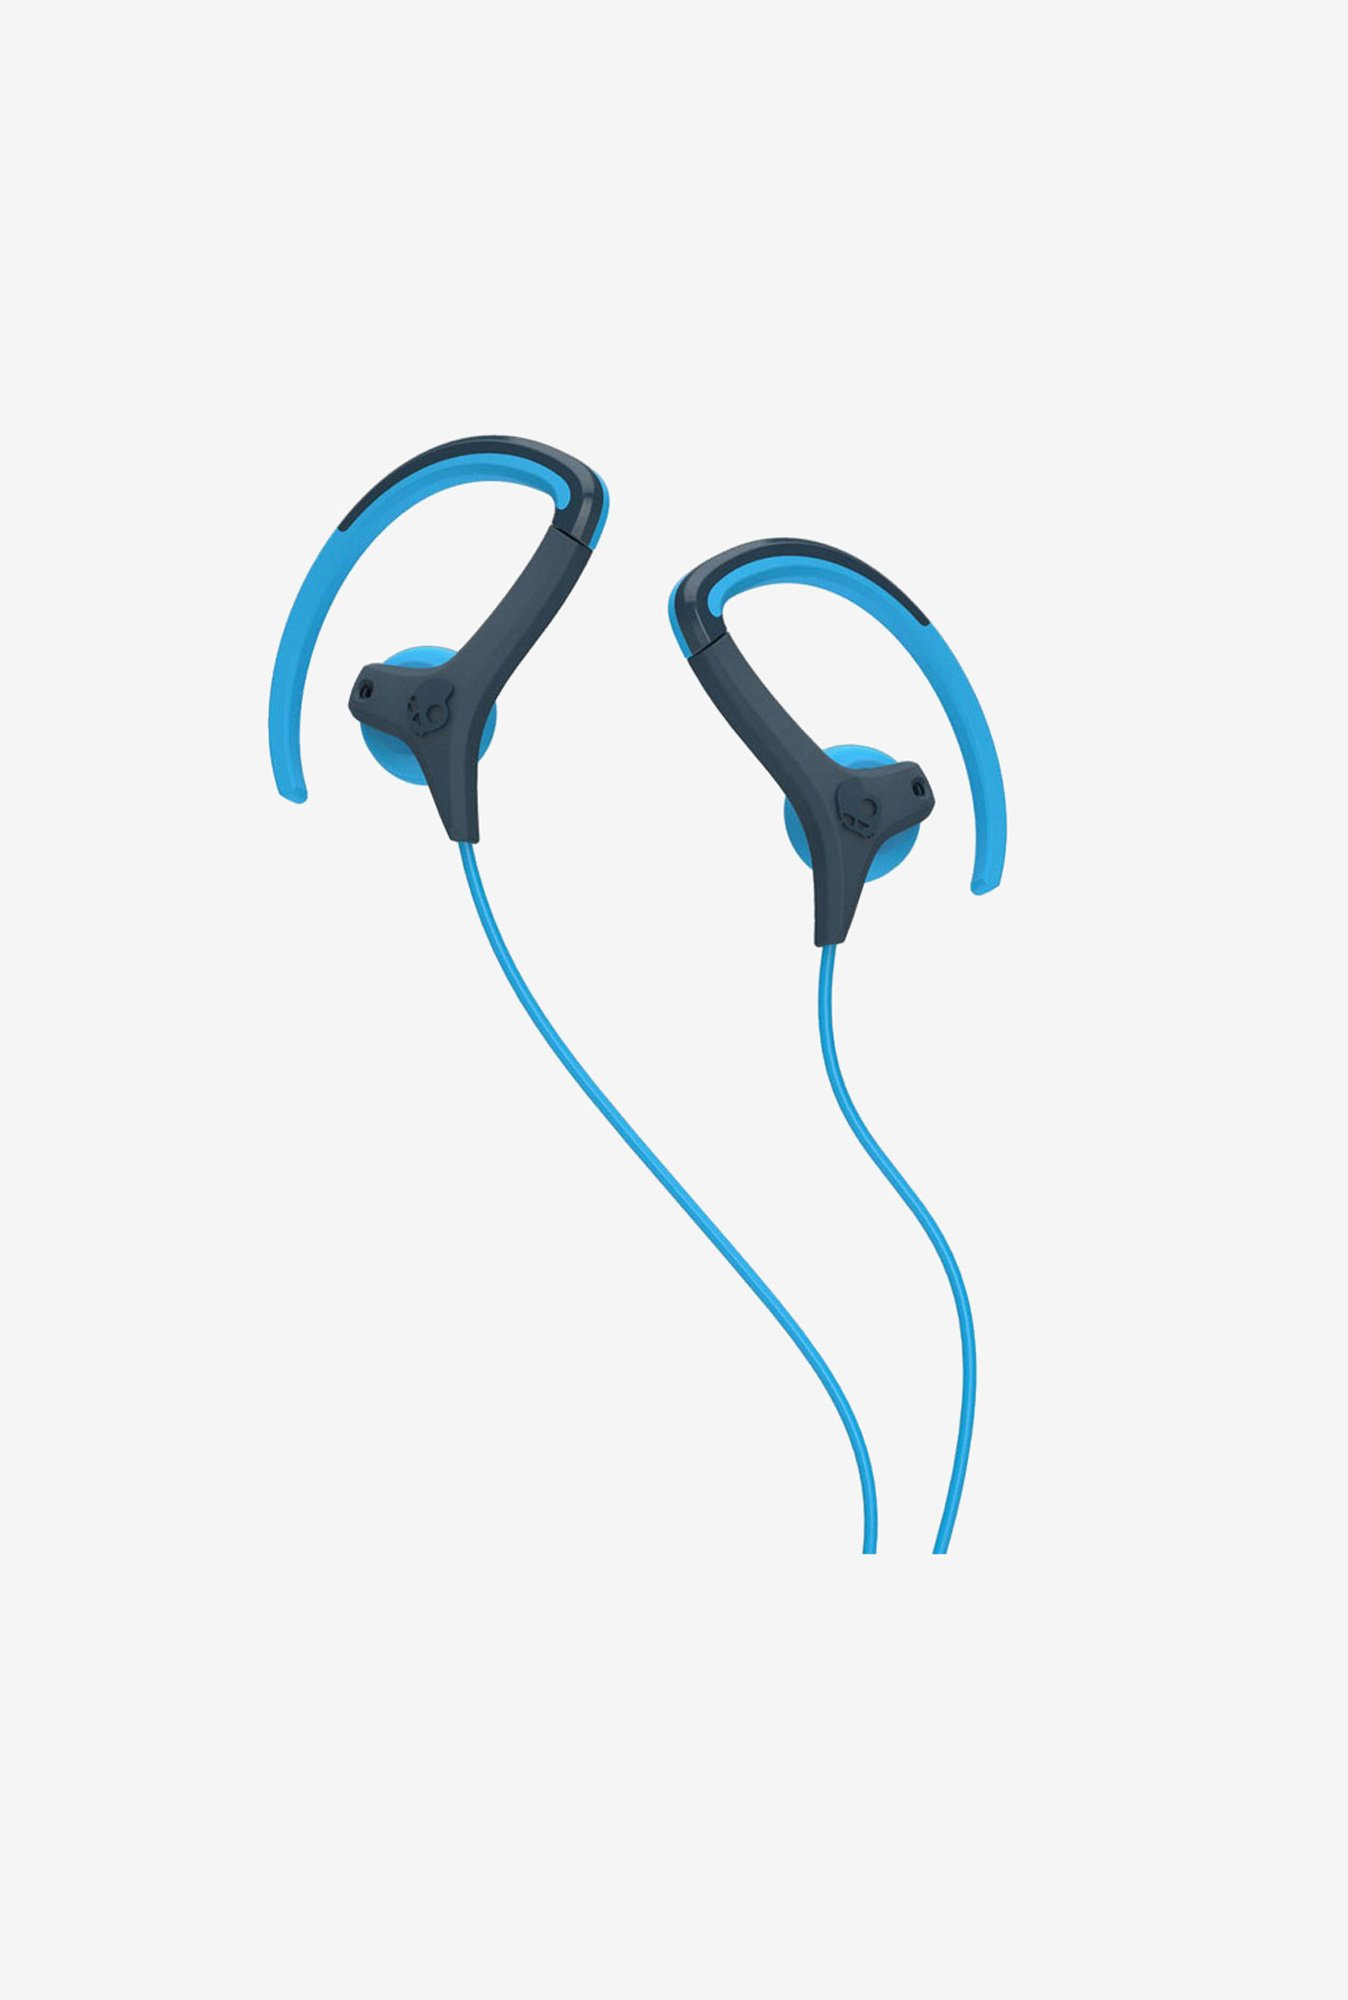 Skullcandy Chops 2.0 S4CHHZ-477 Headphone Navy Blue